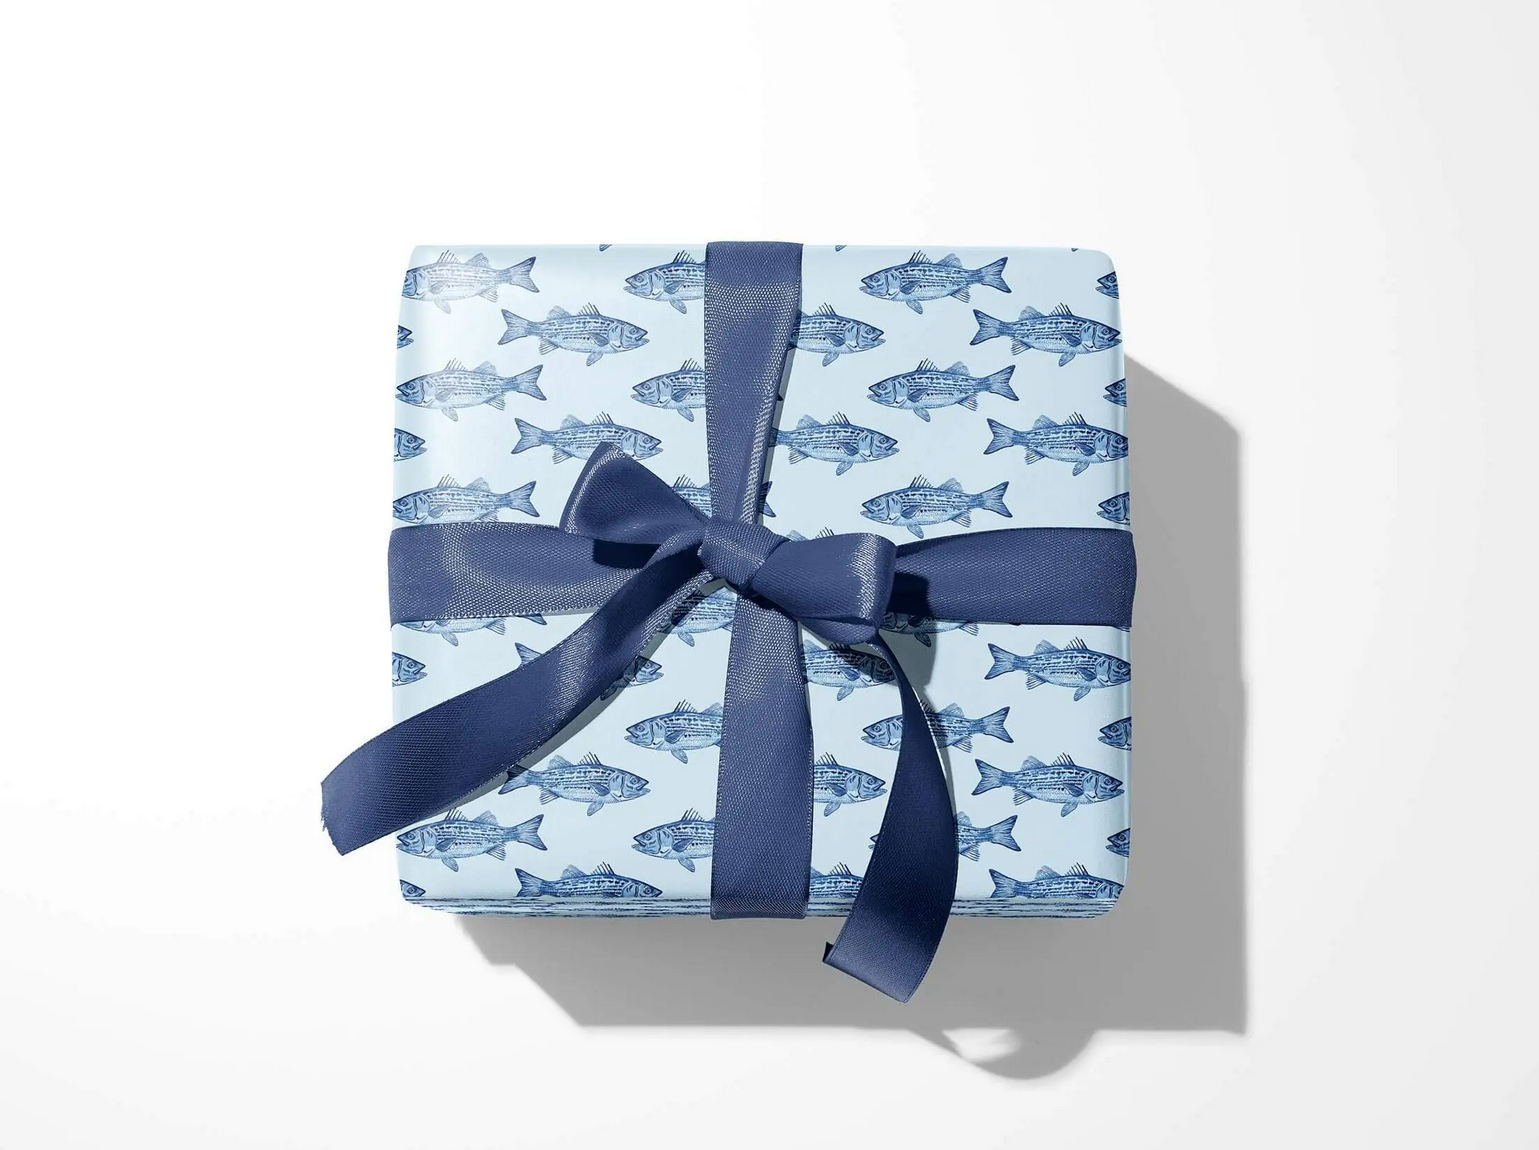 Emily Quigley Ink - EQI Blue Bass Gift Wrap, Roll of 5 Sheets